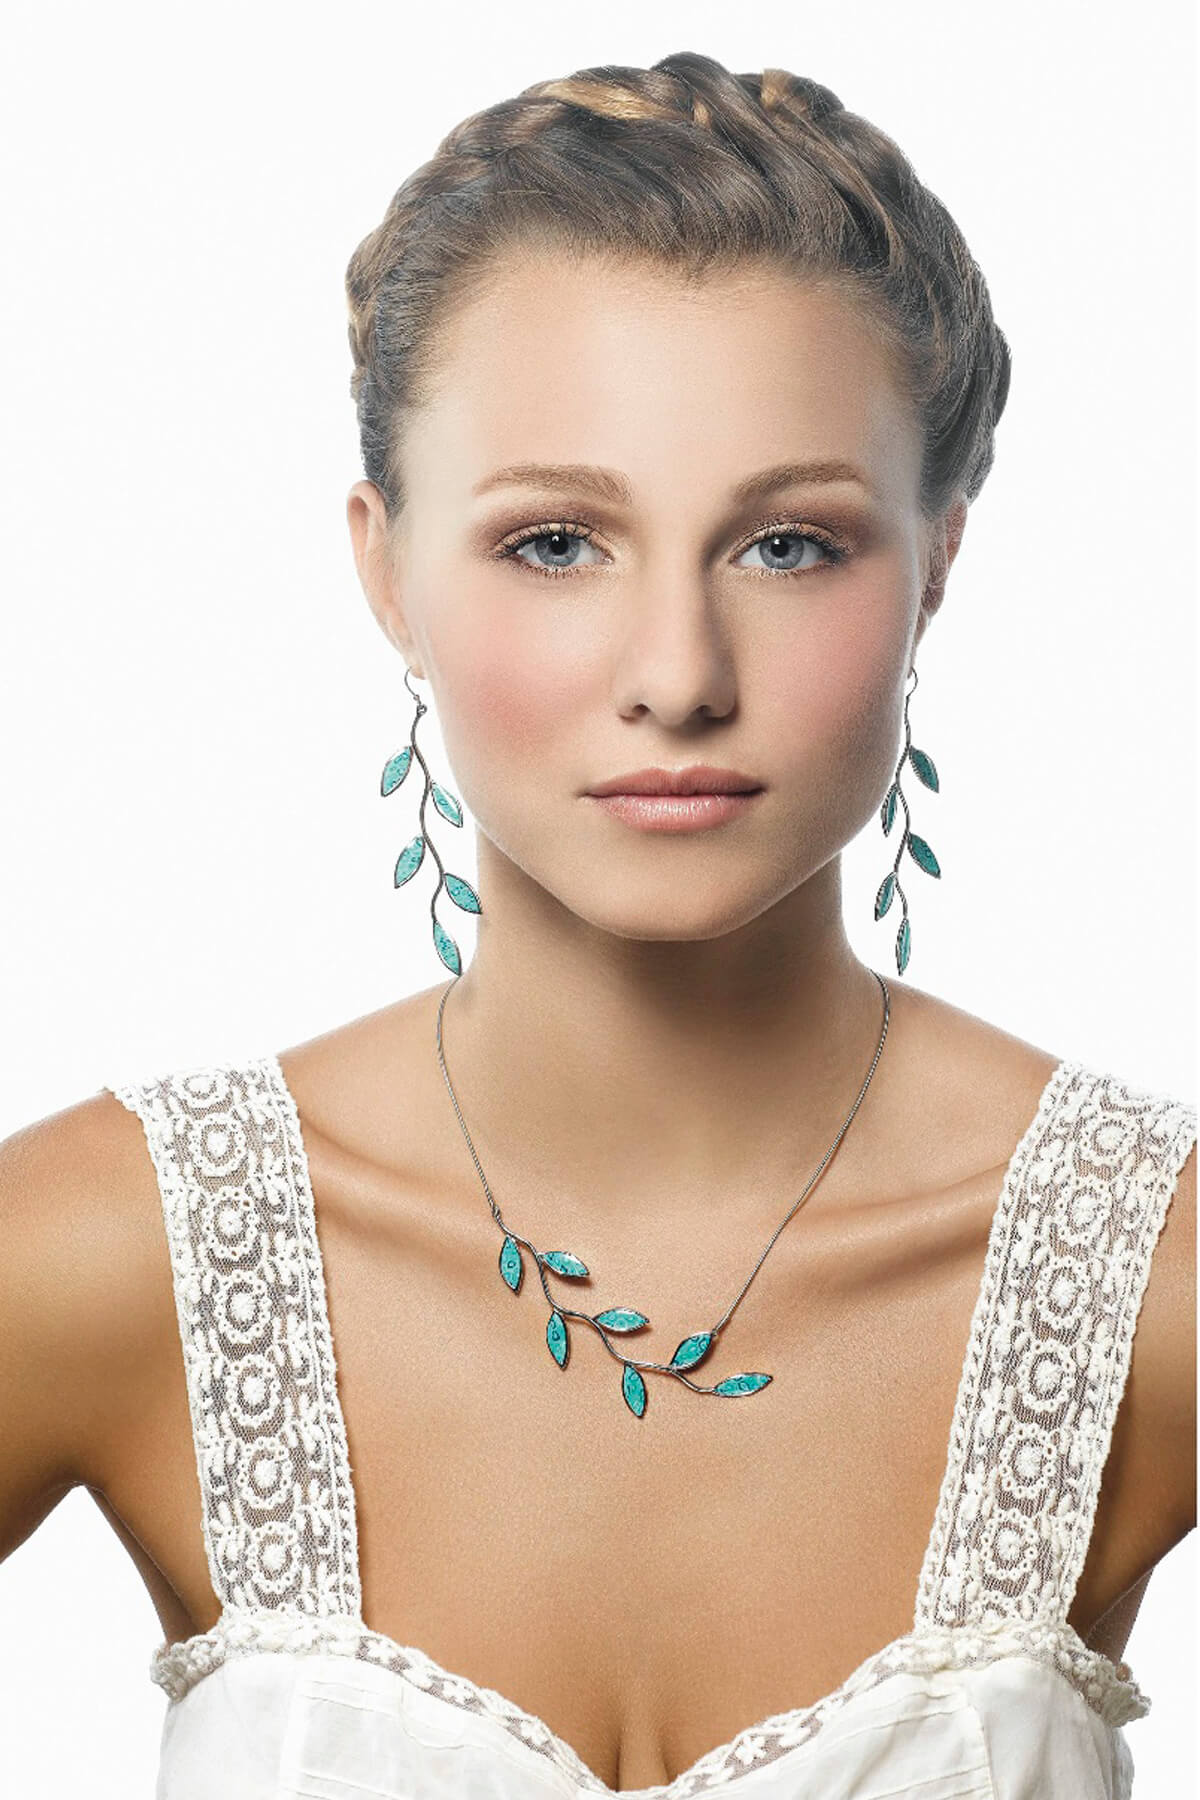 Handmade Silver Olive Leaf Long Earrings and Necklace- Turquoise Pattern